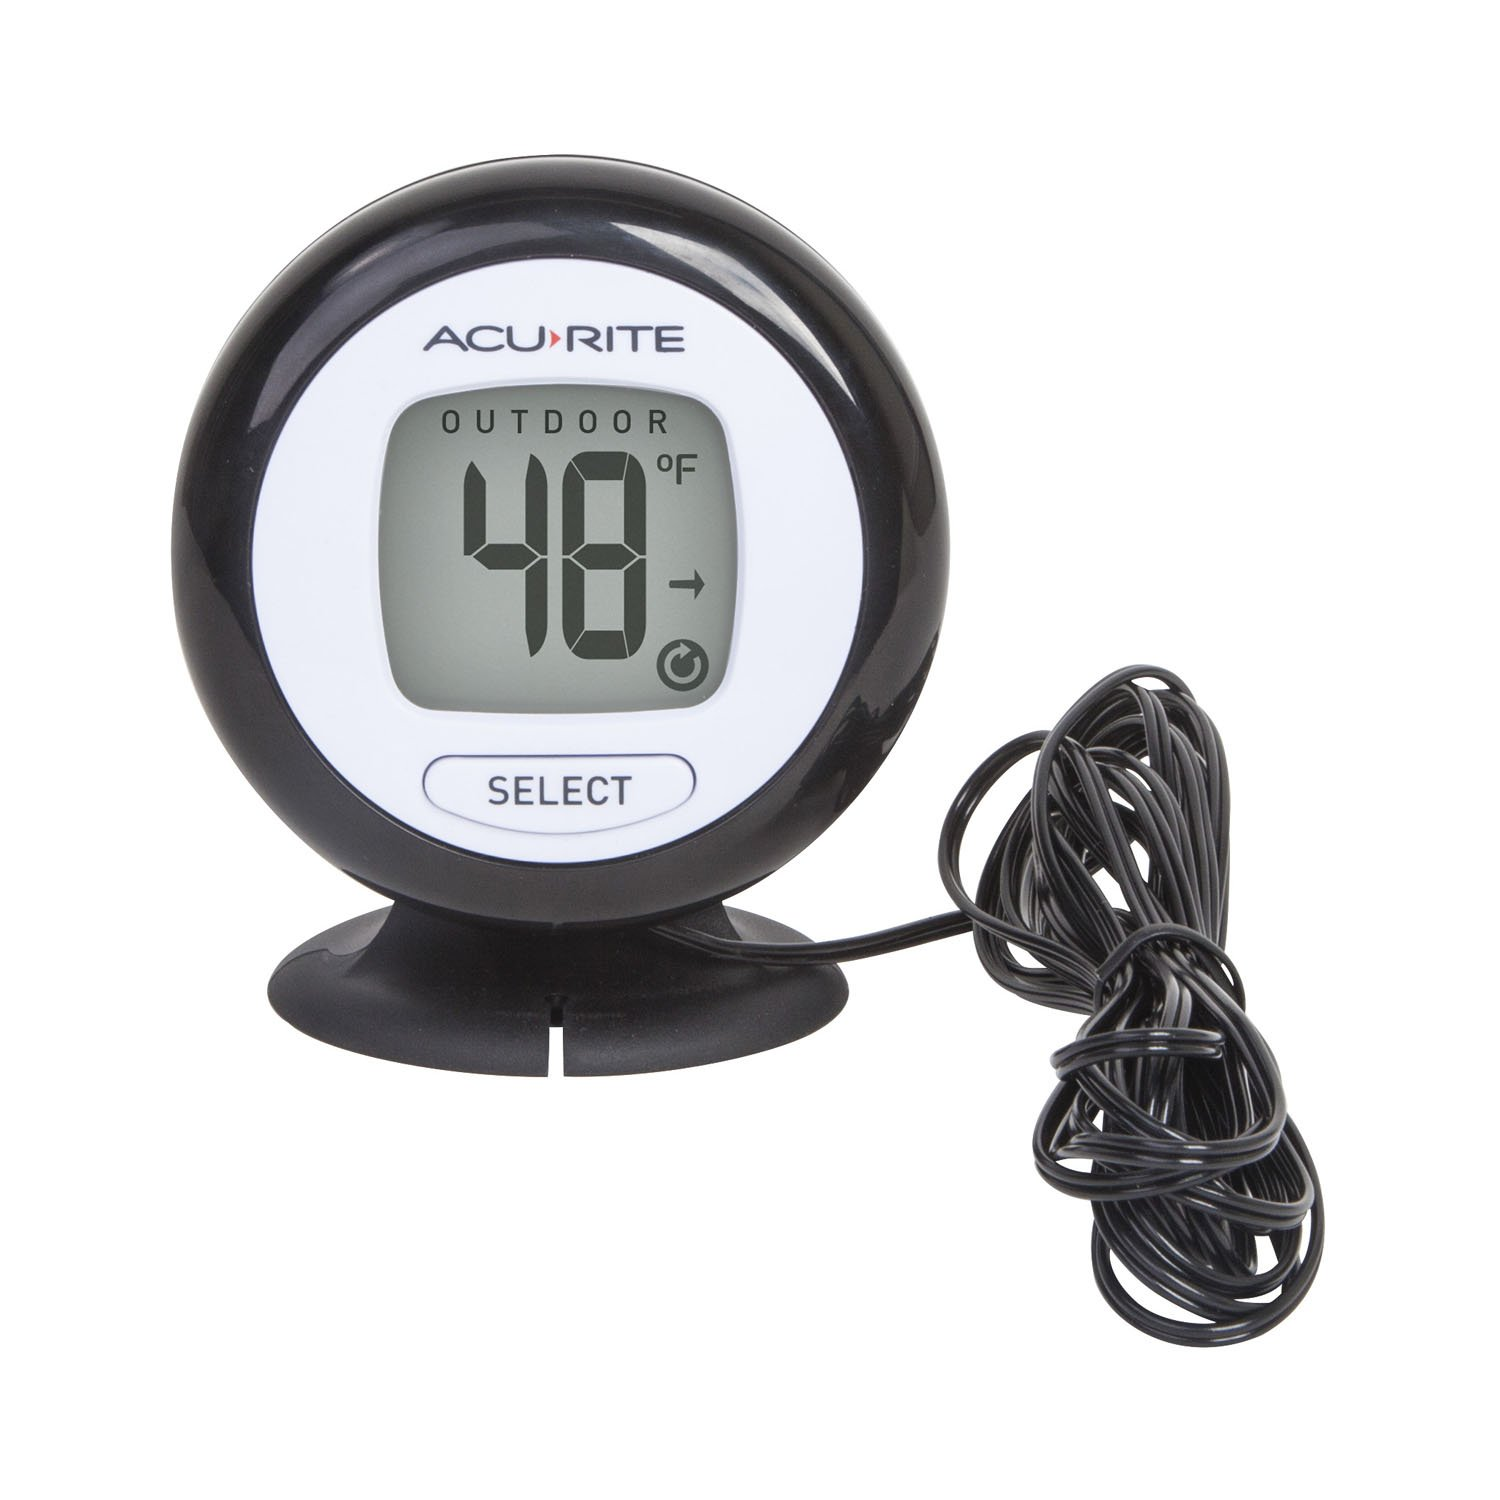 AcuRite 02042 Digital Thermometer with 10' Temperature Sensor Probe and Humidity